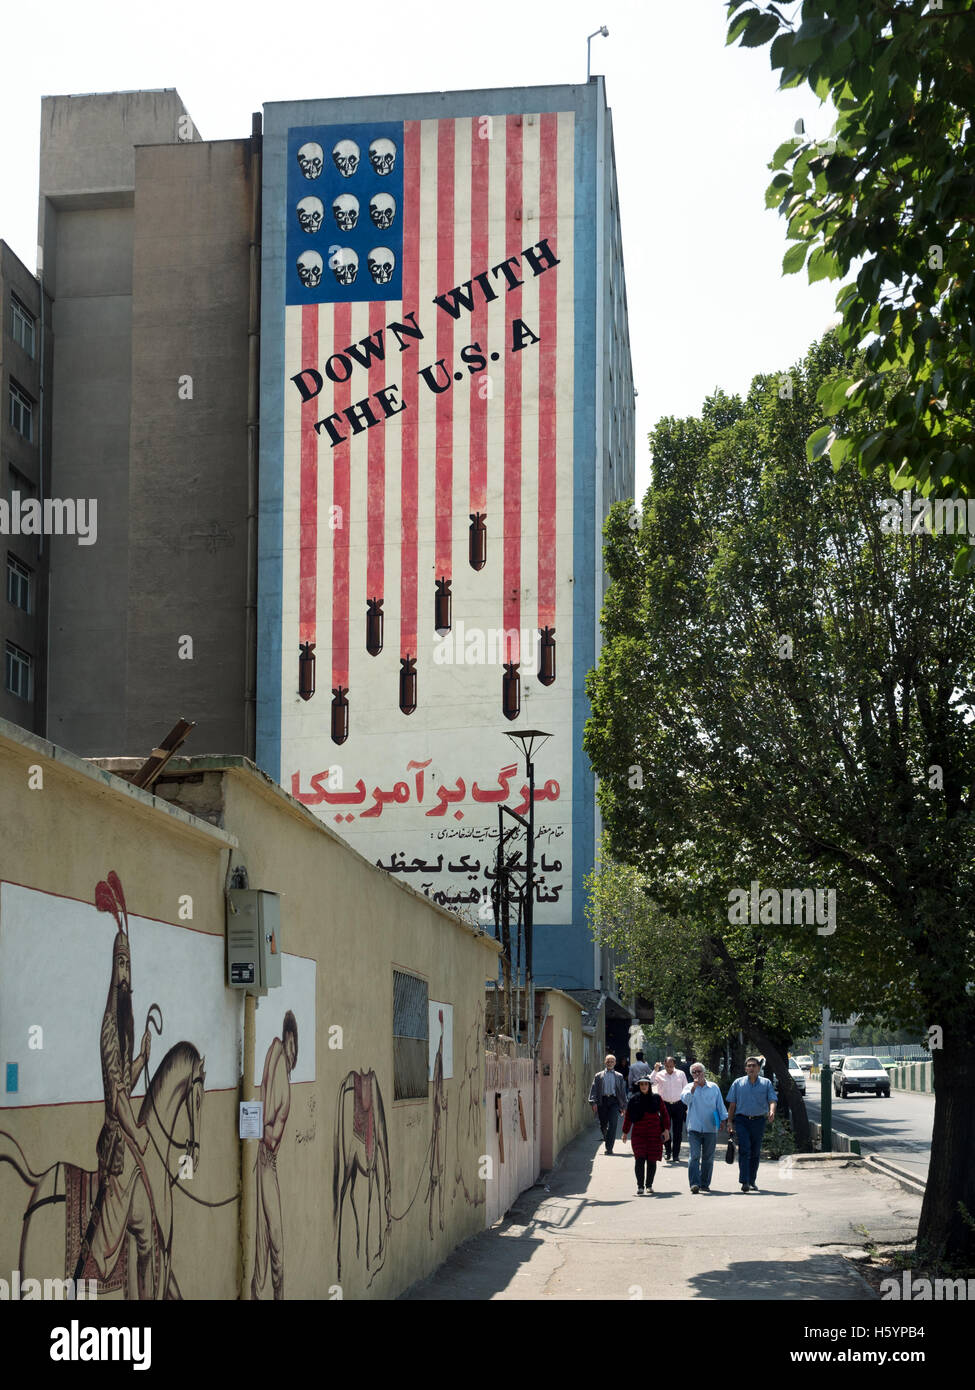 Tehran, Iran : a mural of the American flag featuring skulls and missiles instead of stars and stripes - Stock Image